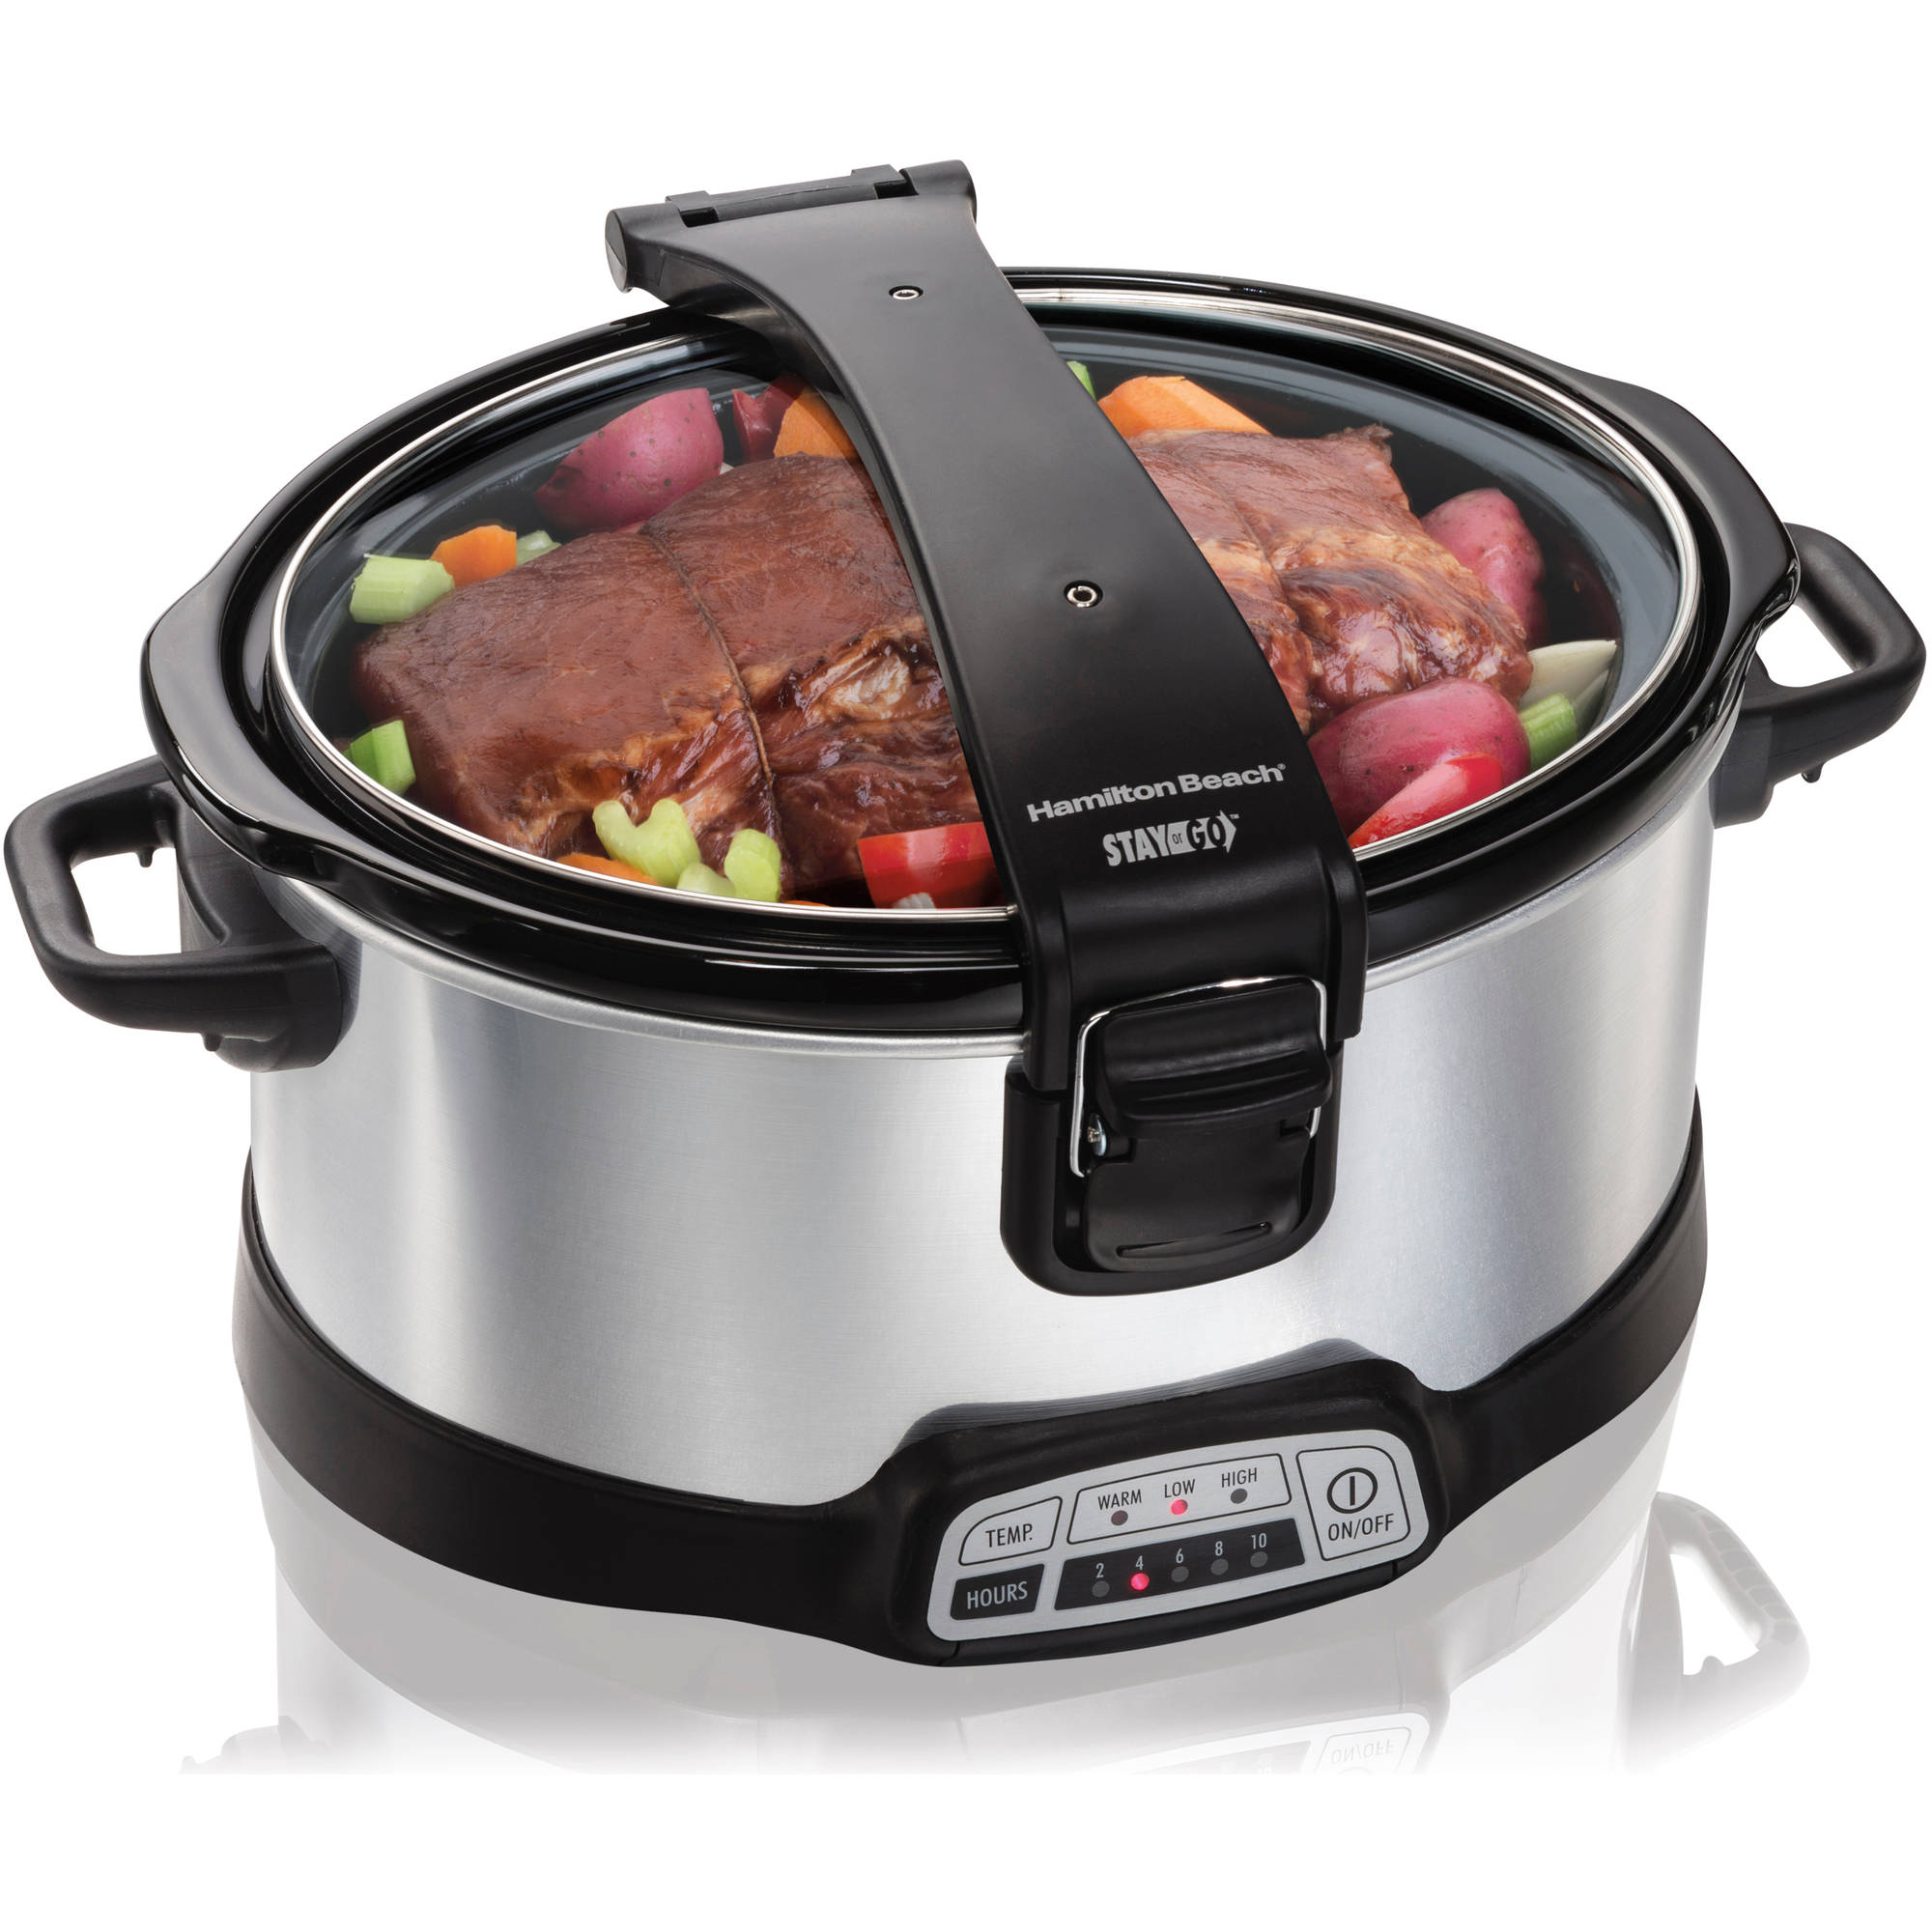 Hamilton Beach 6 Quart Stay or Go Programmable Slow Cooker | Model# 33467